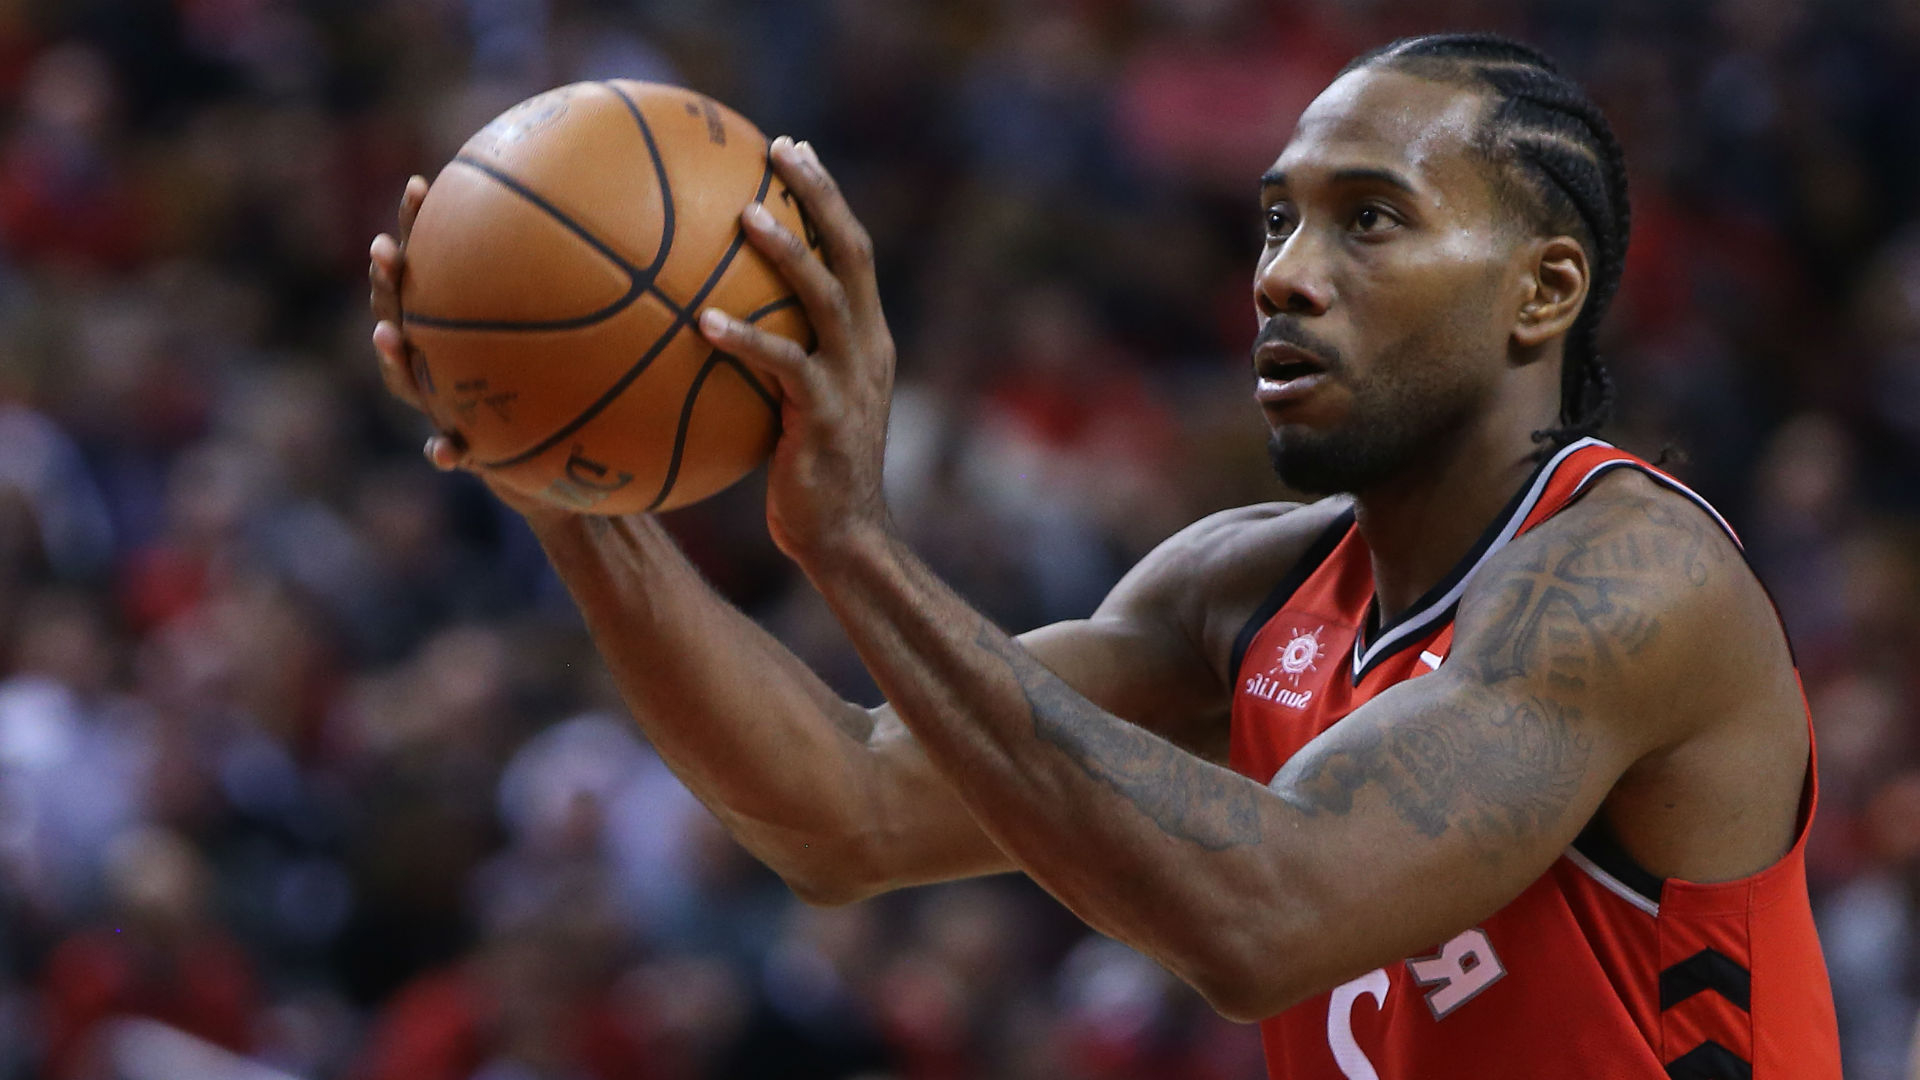 kawhi-leonard-suffers-jammed-foot-in-raptors-victory-over-suns__93109_.jpg